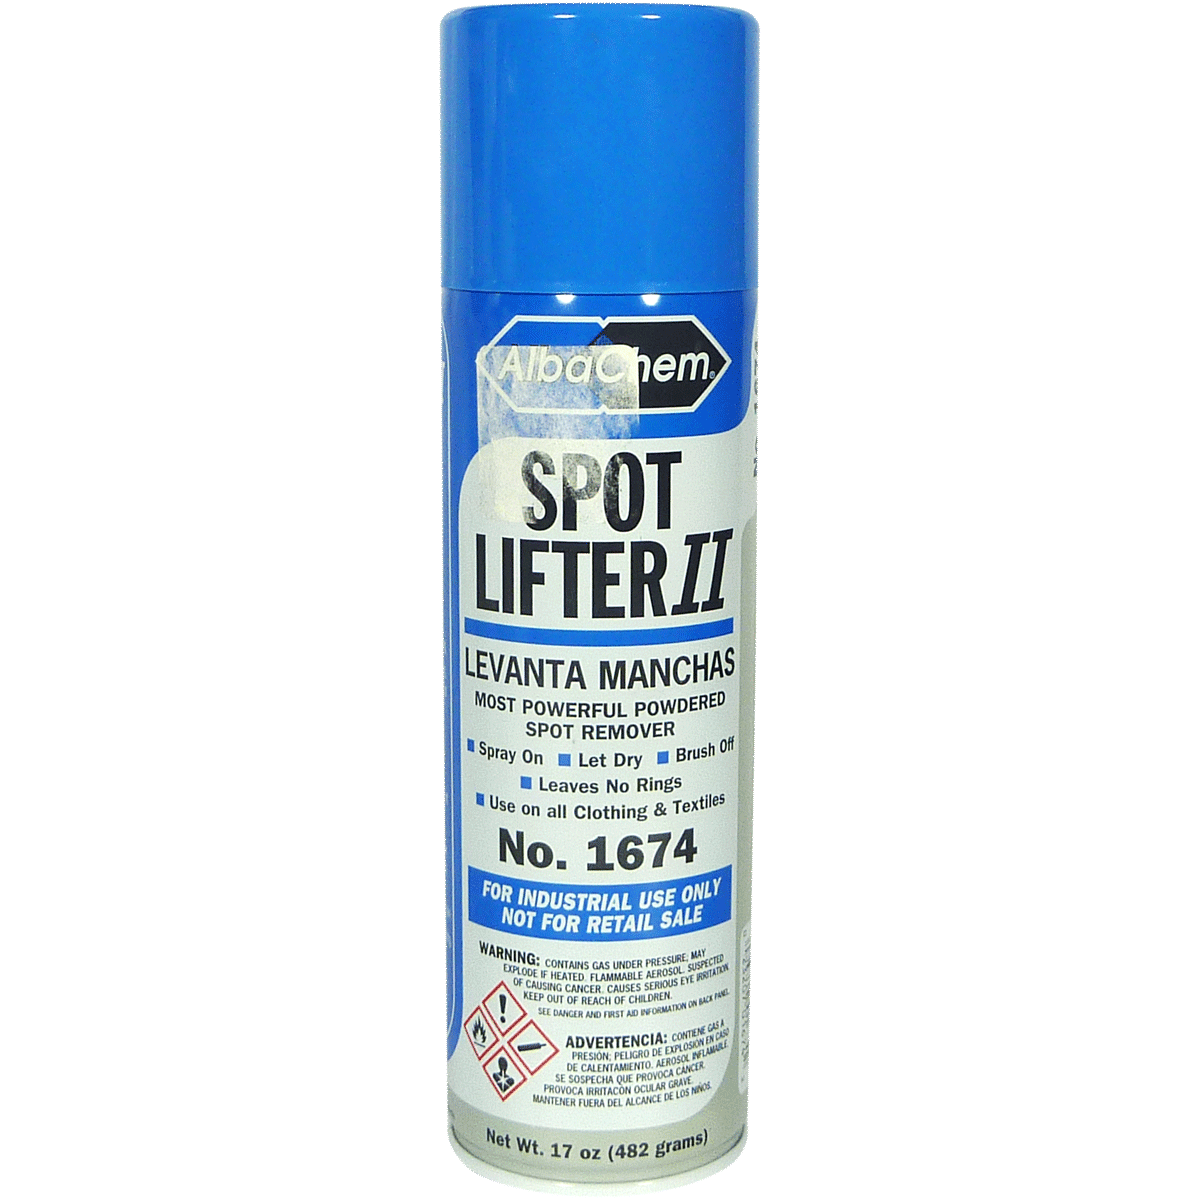 AlbaChem Spot Lifter II Spray - Powdered Spot Remover